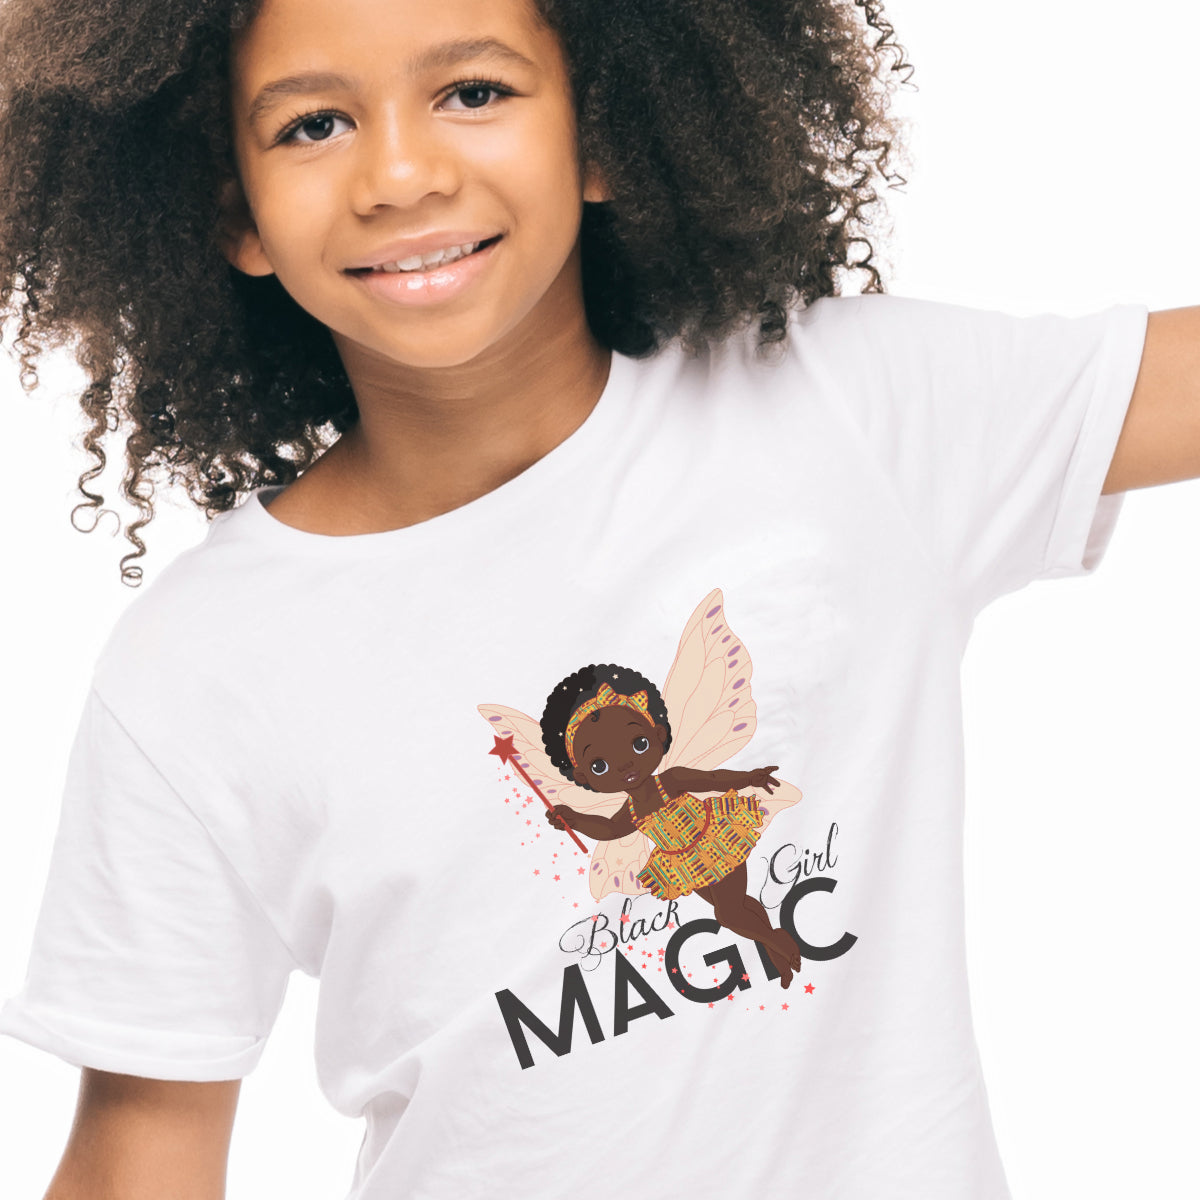 Black Girl Magic Tshirt - Ages 6 and Over